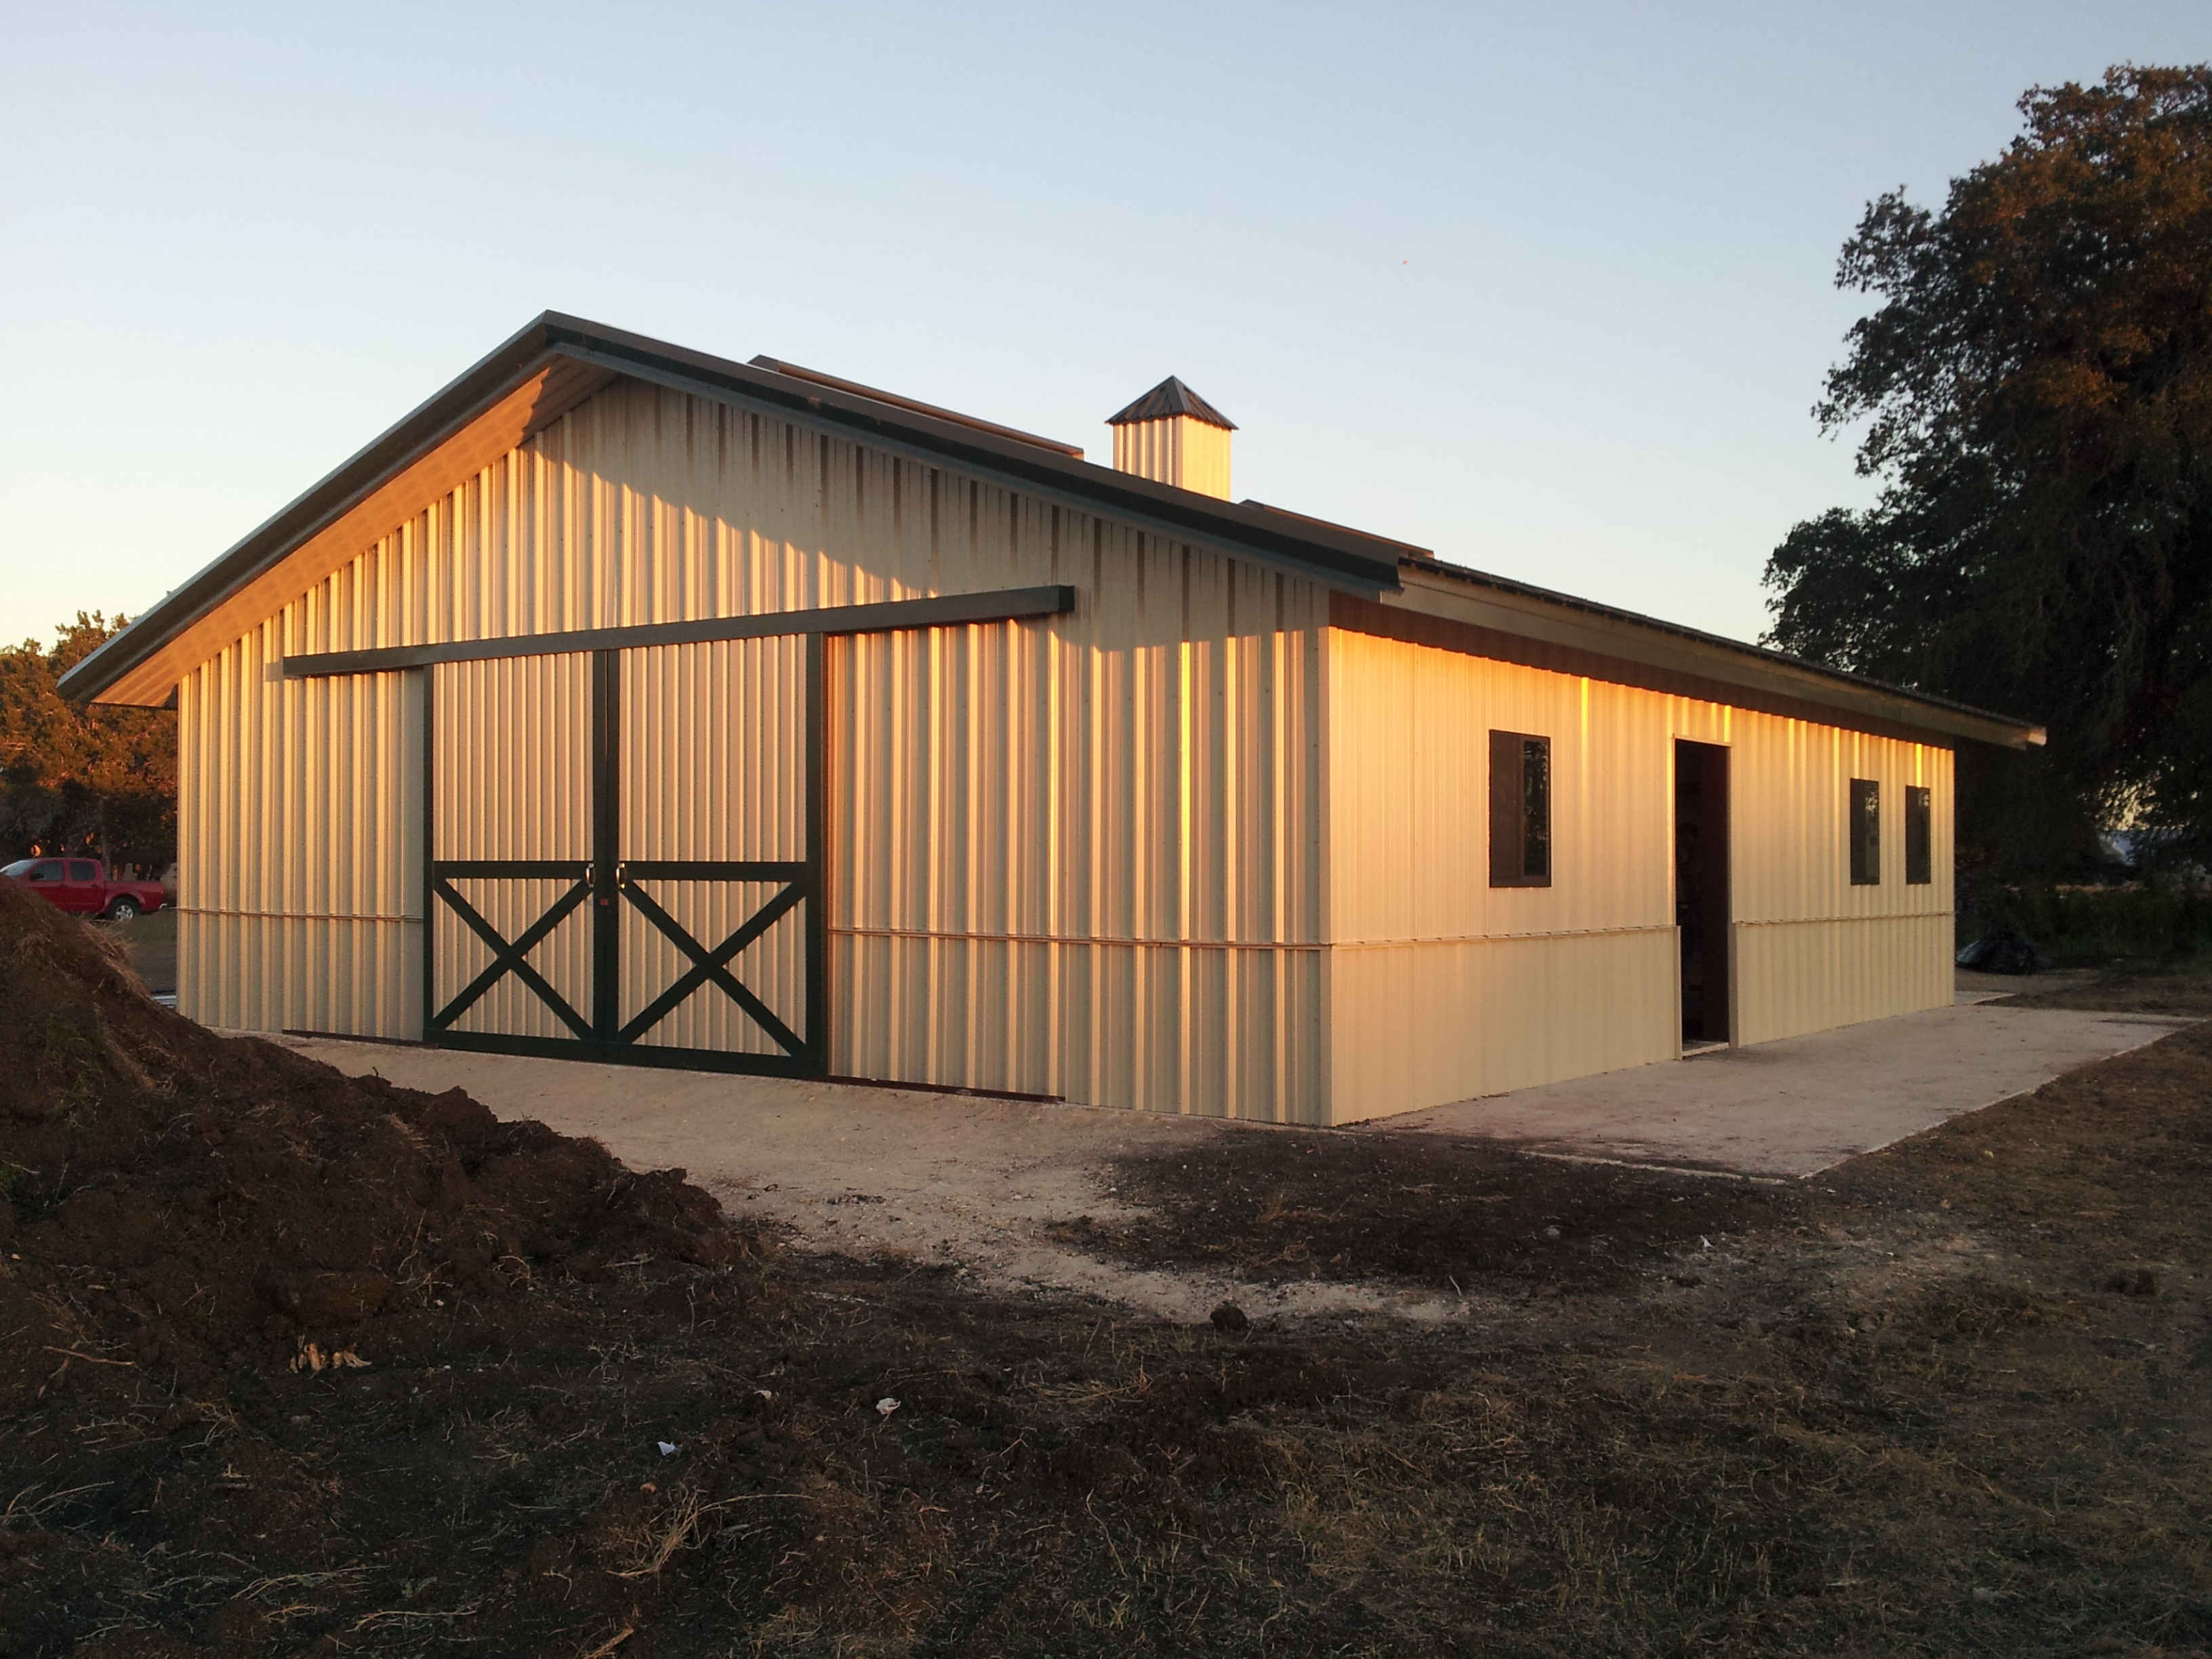 And ideas more barn ideas barns design horse barn designs Barn designs